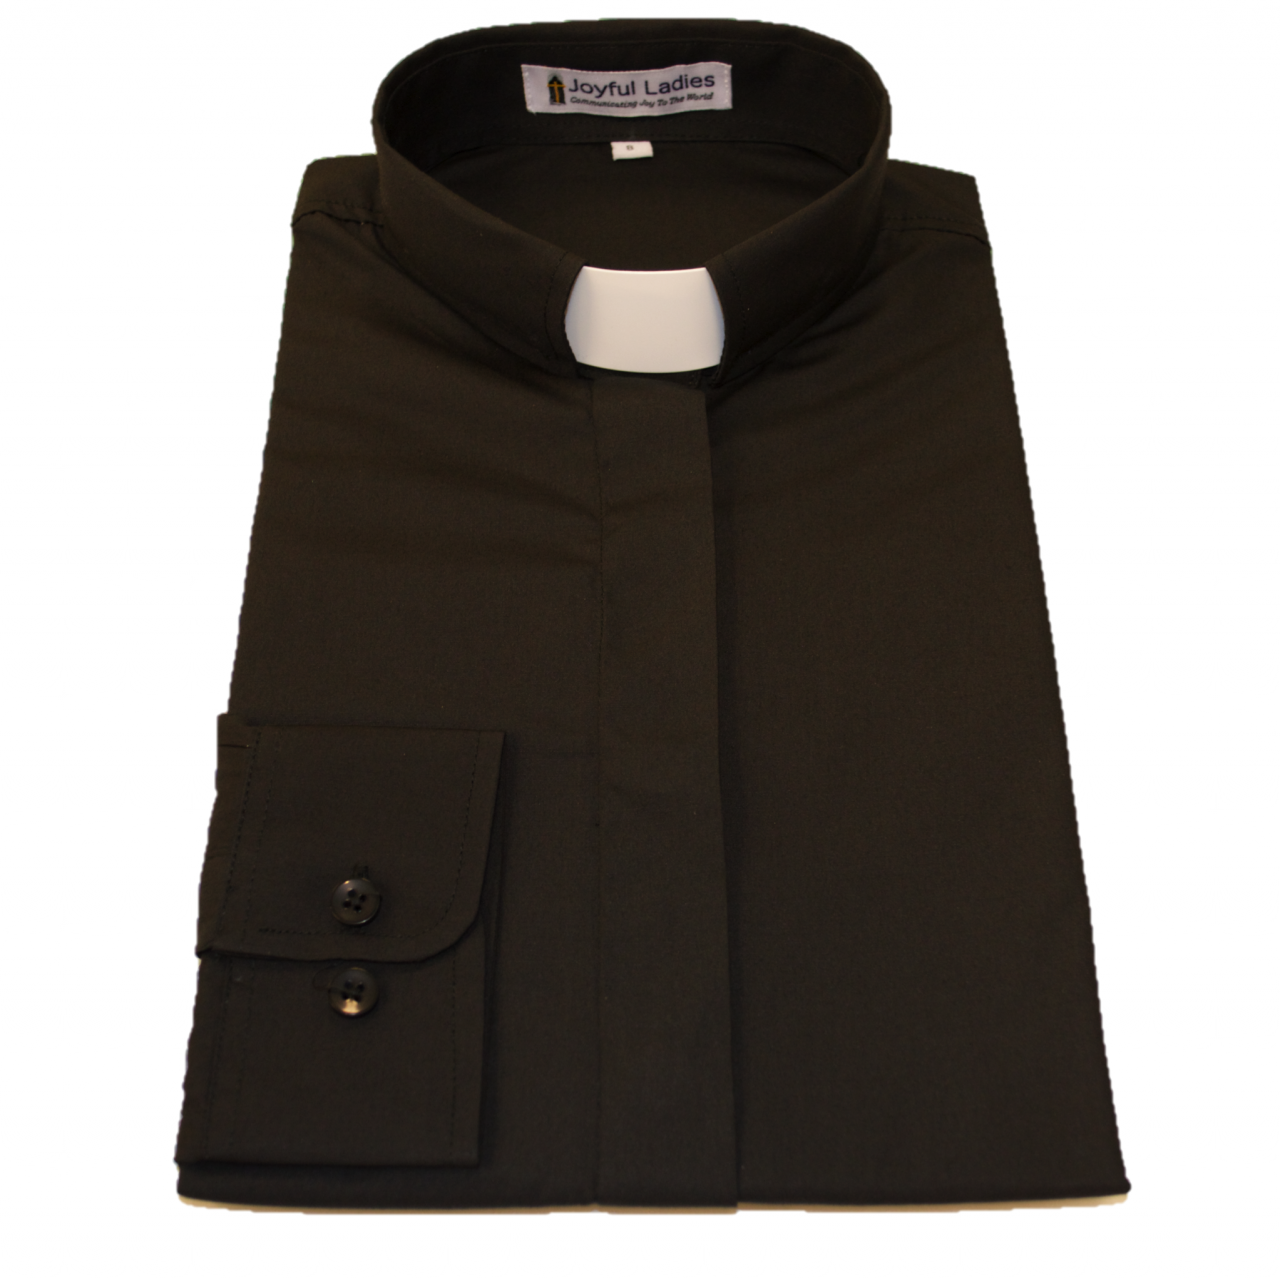 501. Women's Long-Sleeve Tab-Collar Clergy Shirt - Black